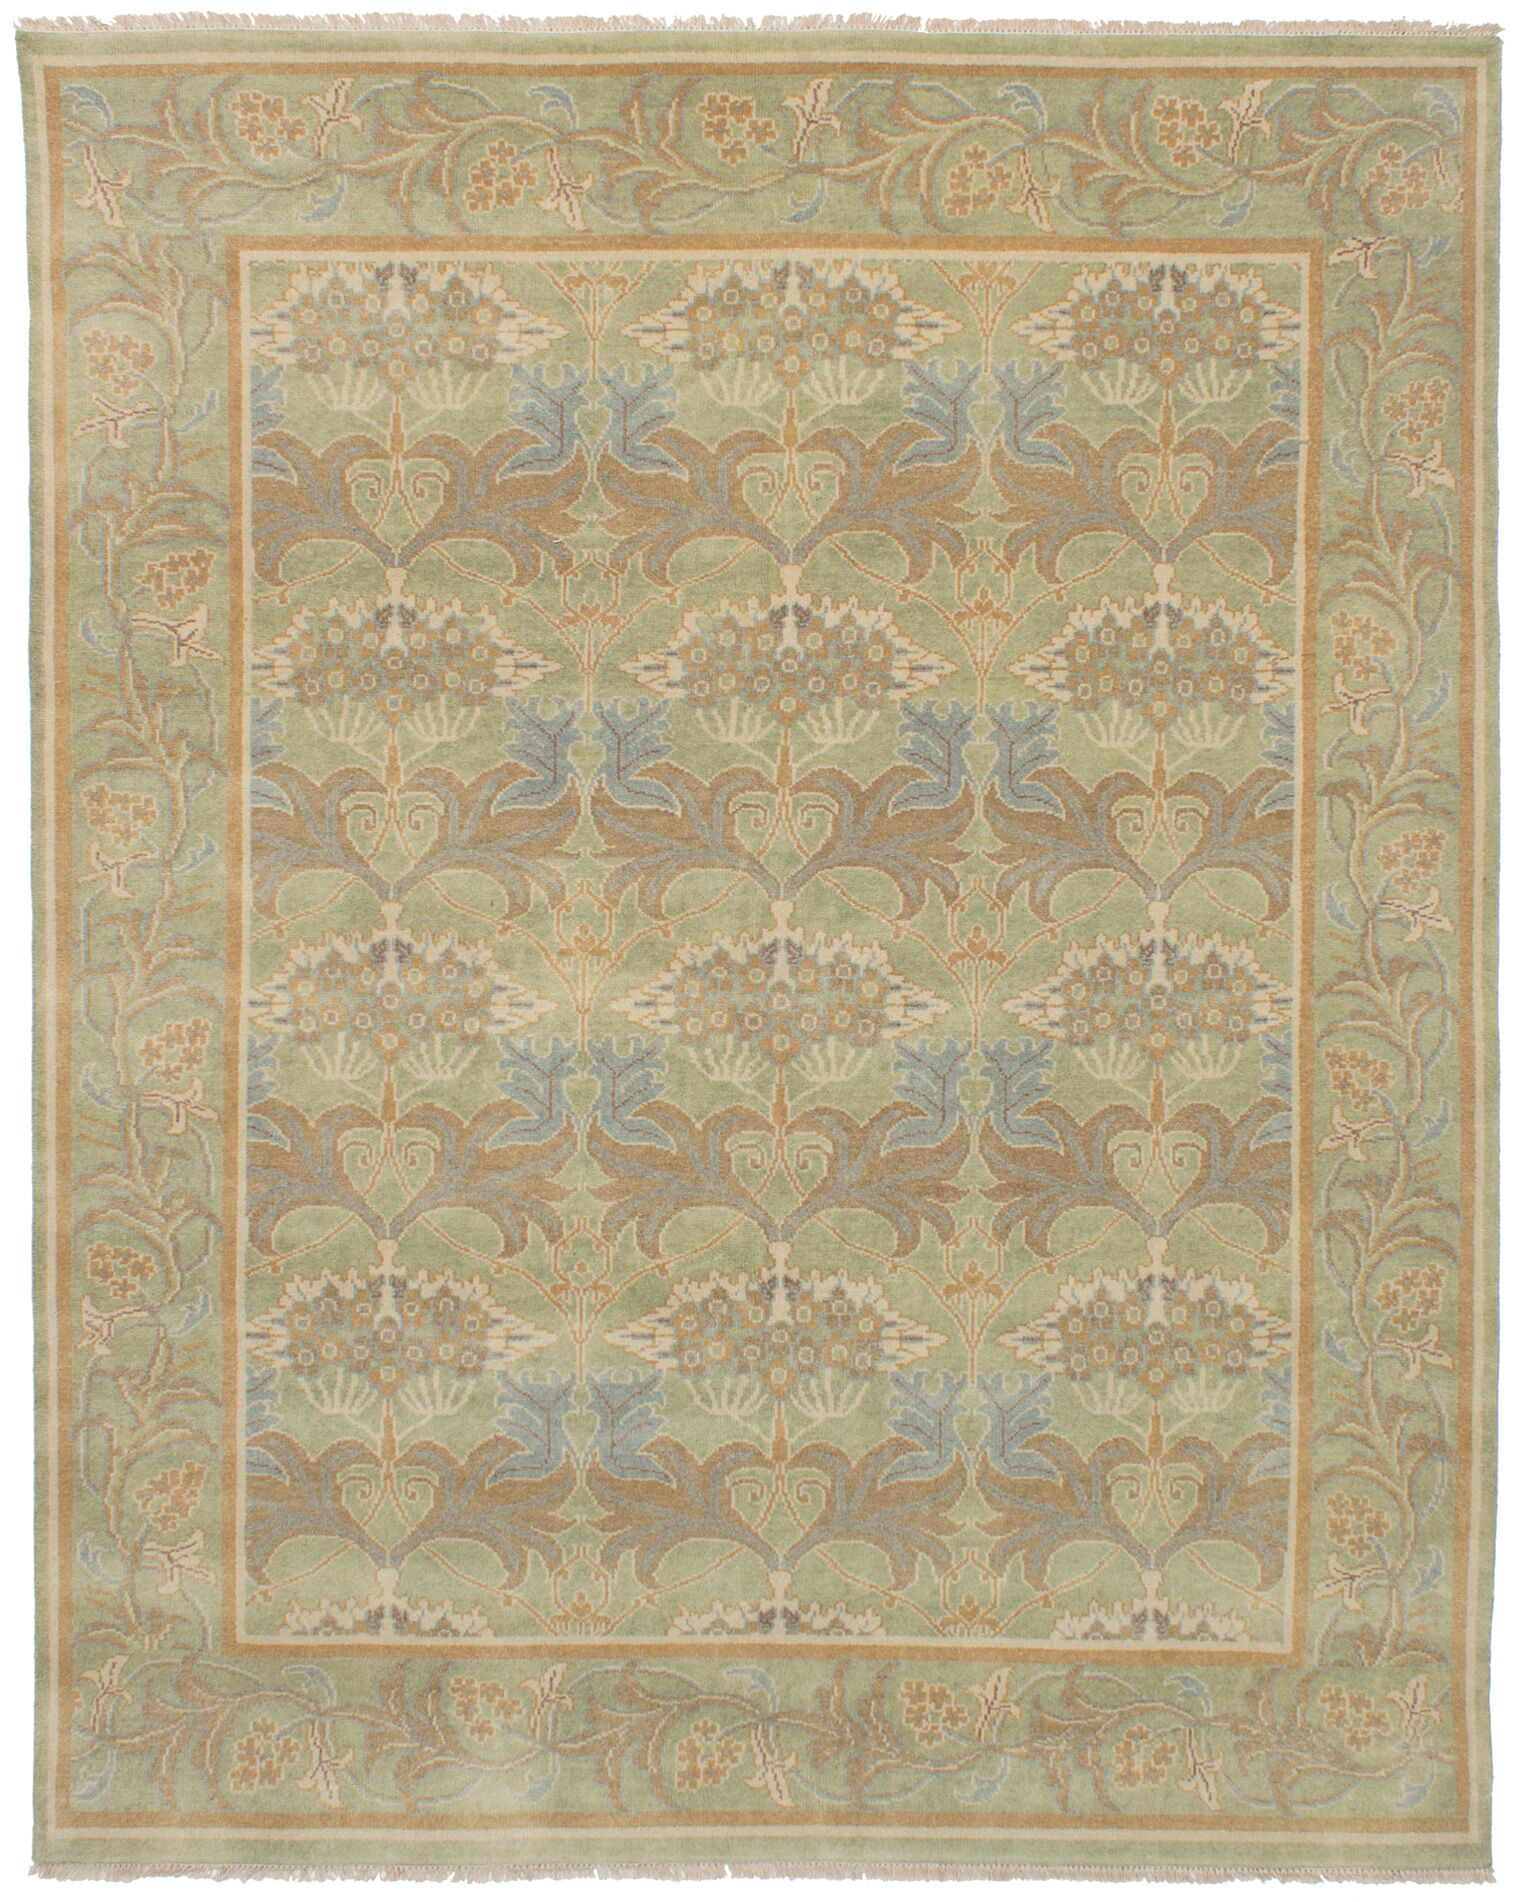 One-of-a-Kind Doggett Hand-Knotted 8' x 10' Wool Green/Brown Area Rug